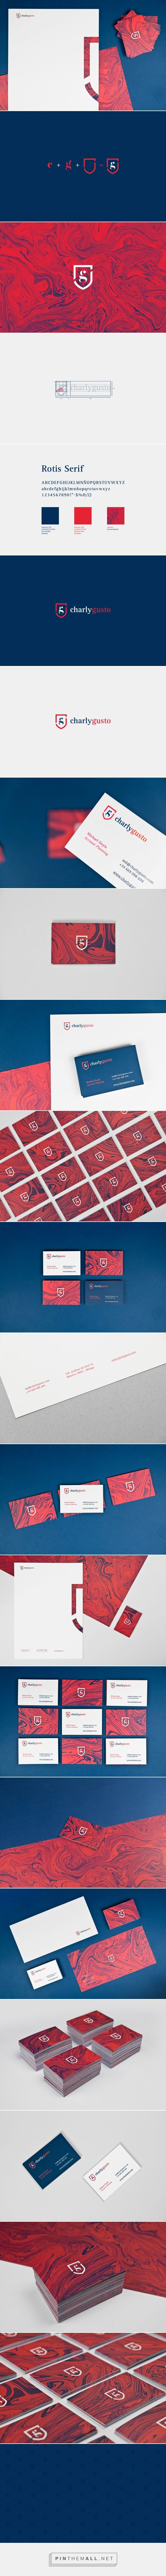 """Charly Gusto has used a crest with fusion of lowercase serif """"g"""" and """"c"""" as a logo. He has followed a colour scheme of red white and blue as a brand identity. The logo has been applied on business cards, web and the side of the crest has been used for a letter. The simple design makes it recognisable across the mediums, which is why I think cutting off most of the logo works on the letter paper."""